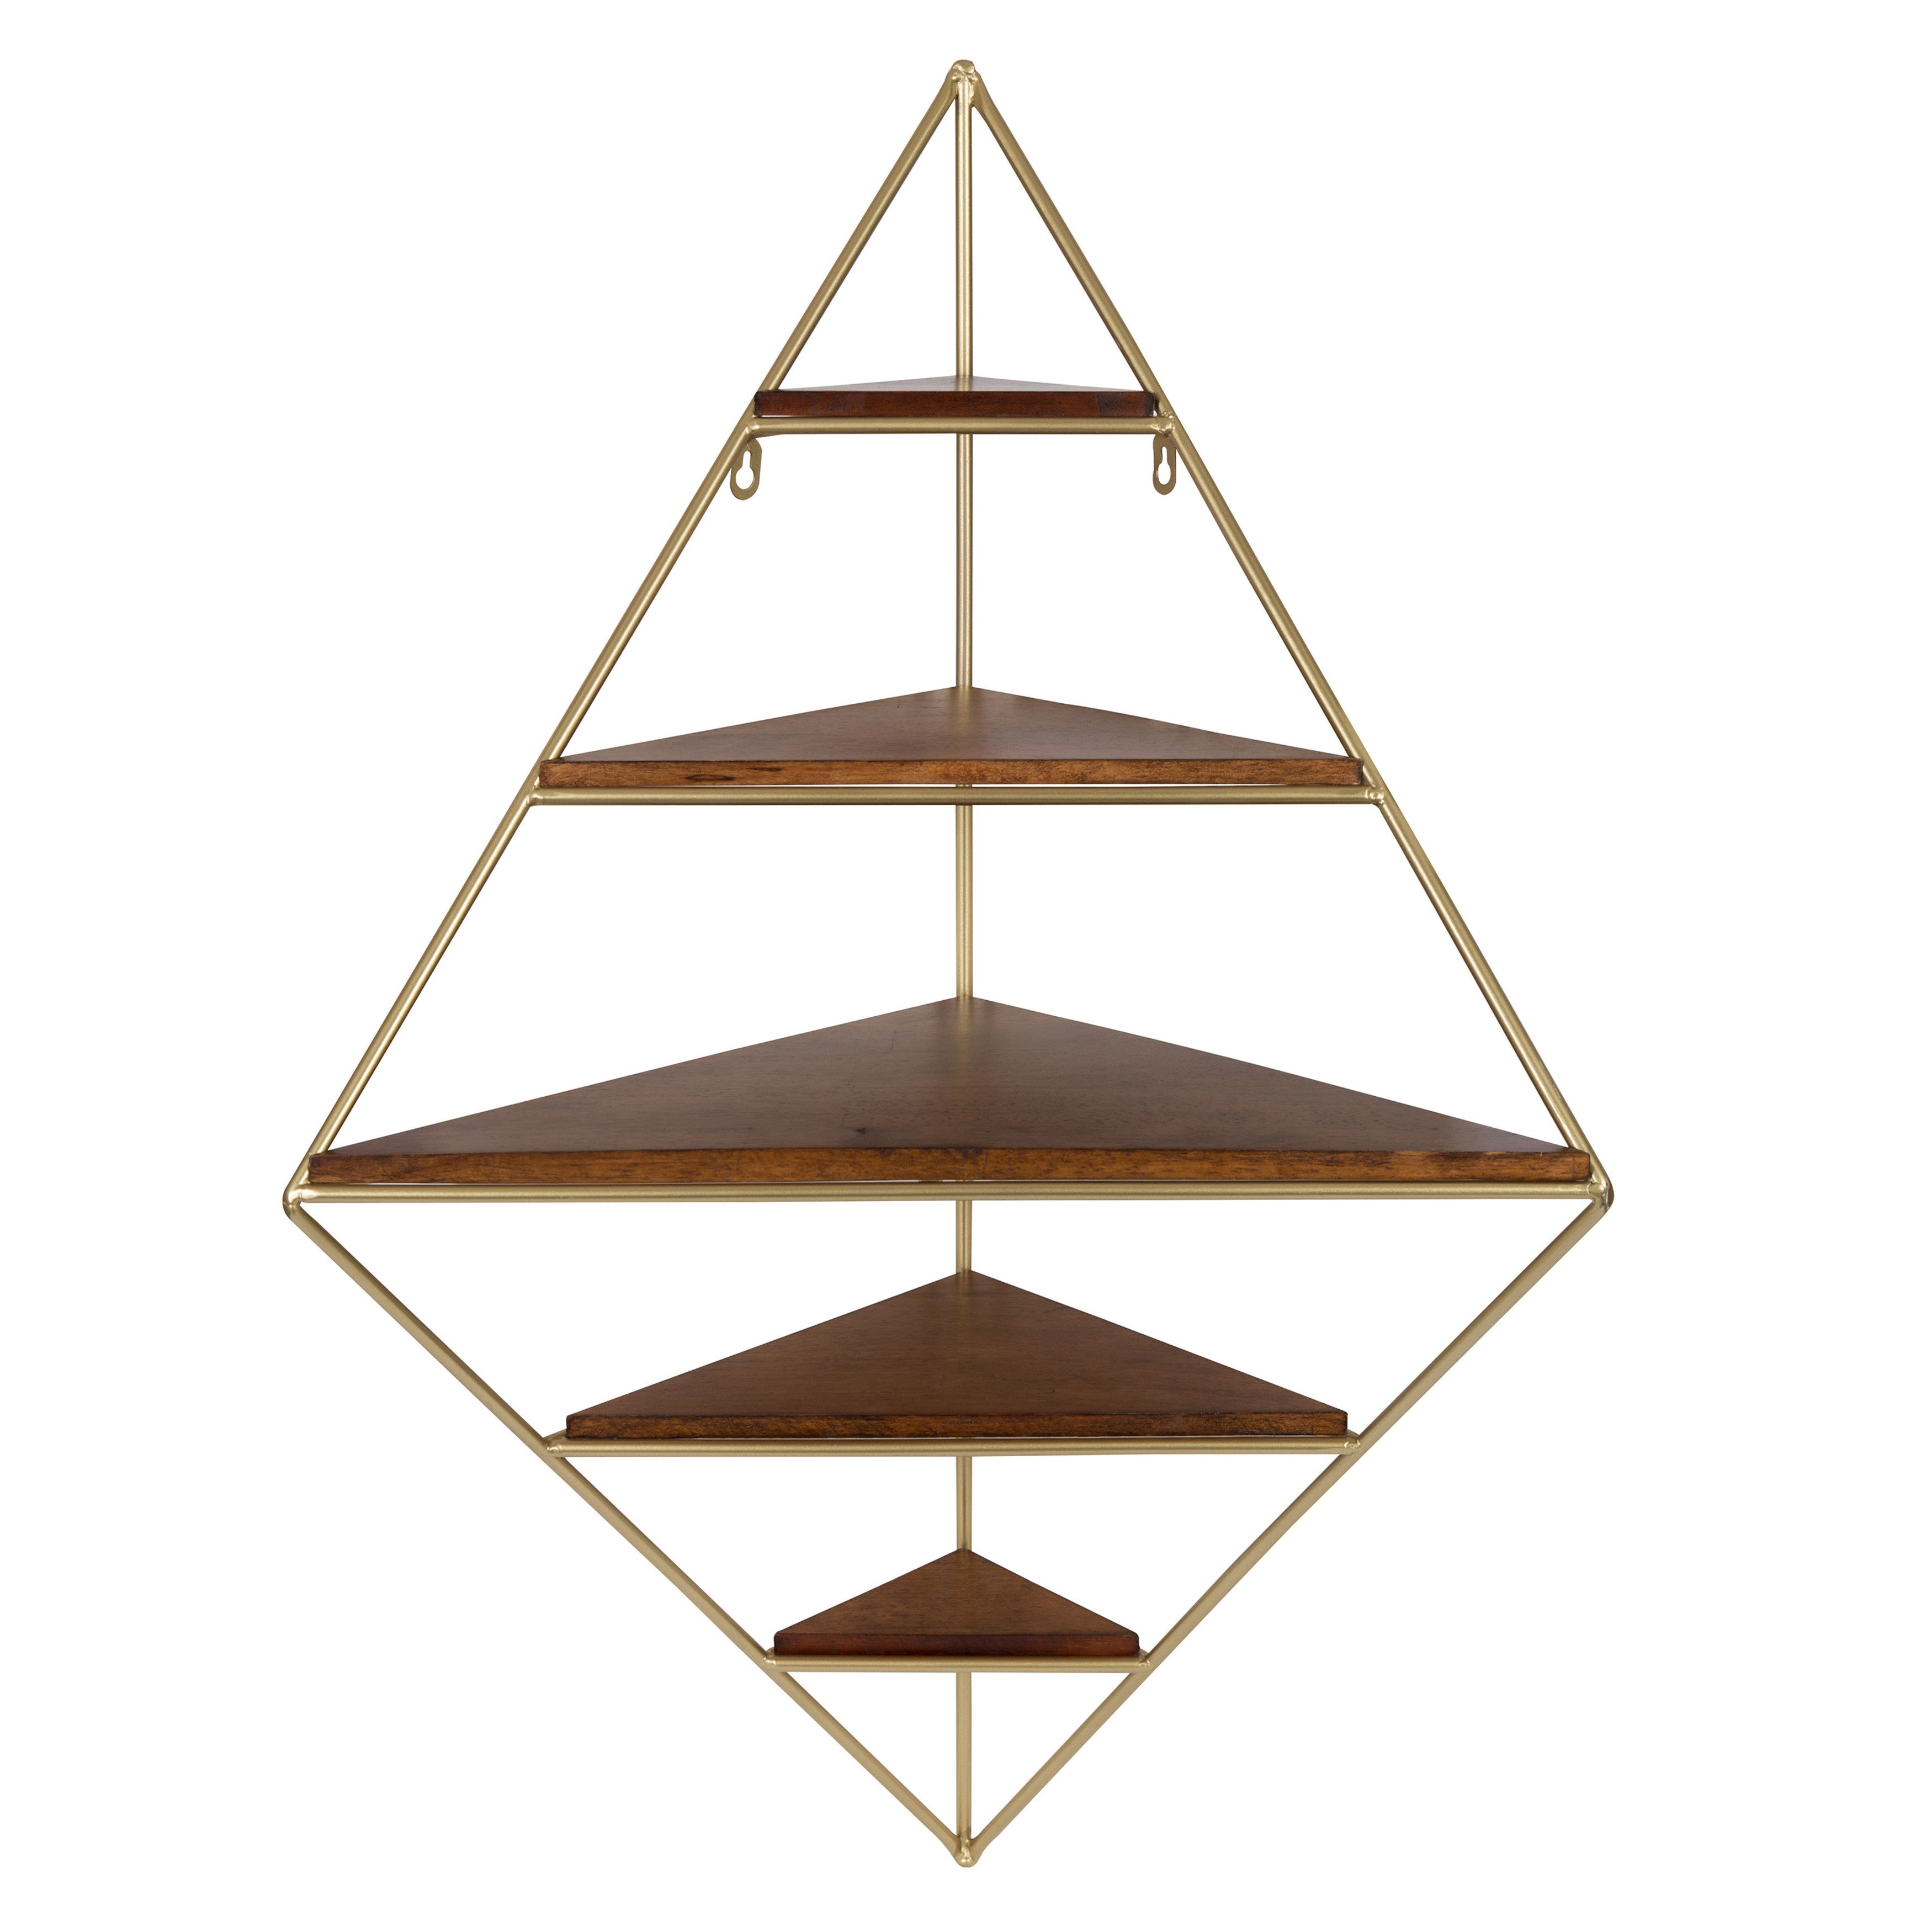 Kate And Laurel   Melora Decorative Mid Century Modern Corner Wall Shelf  With Gold Frame And Solid Wood Shelves, Walnut Finish   Walmart.com